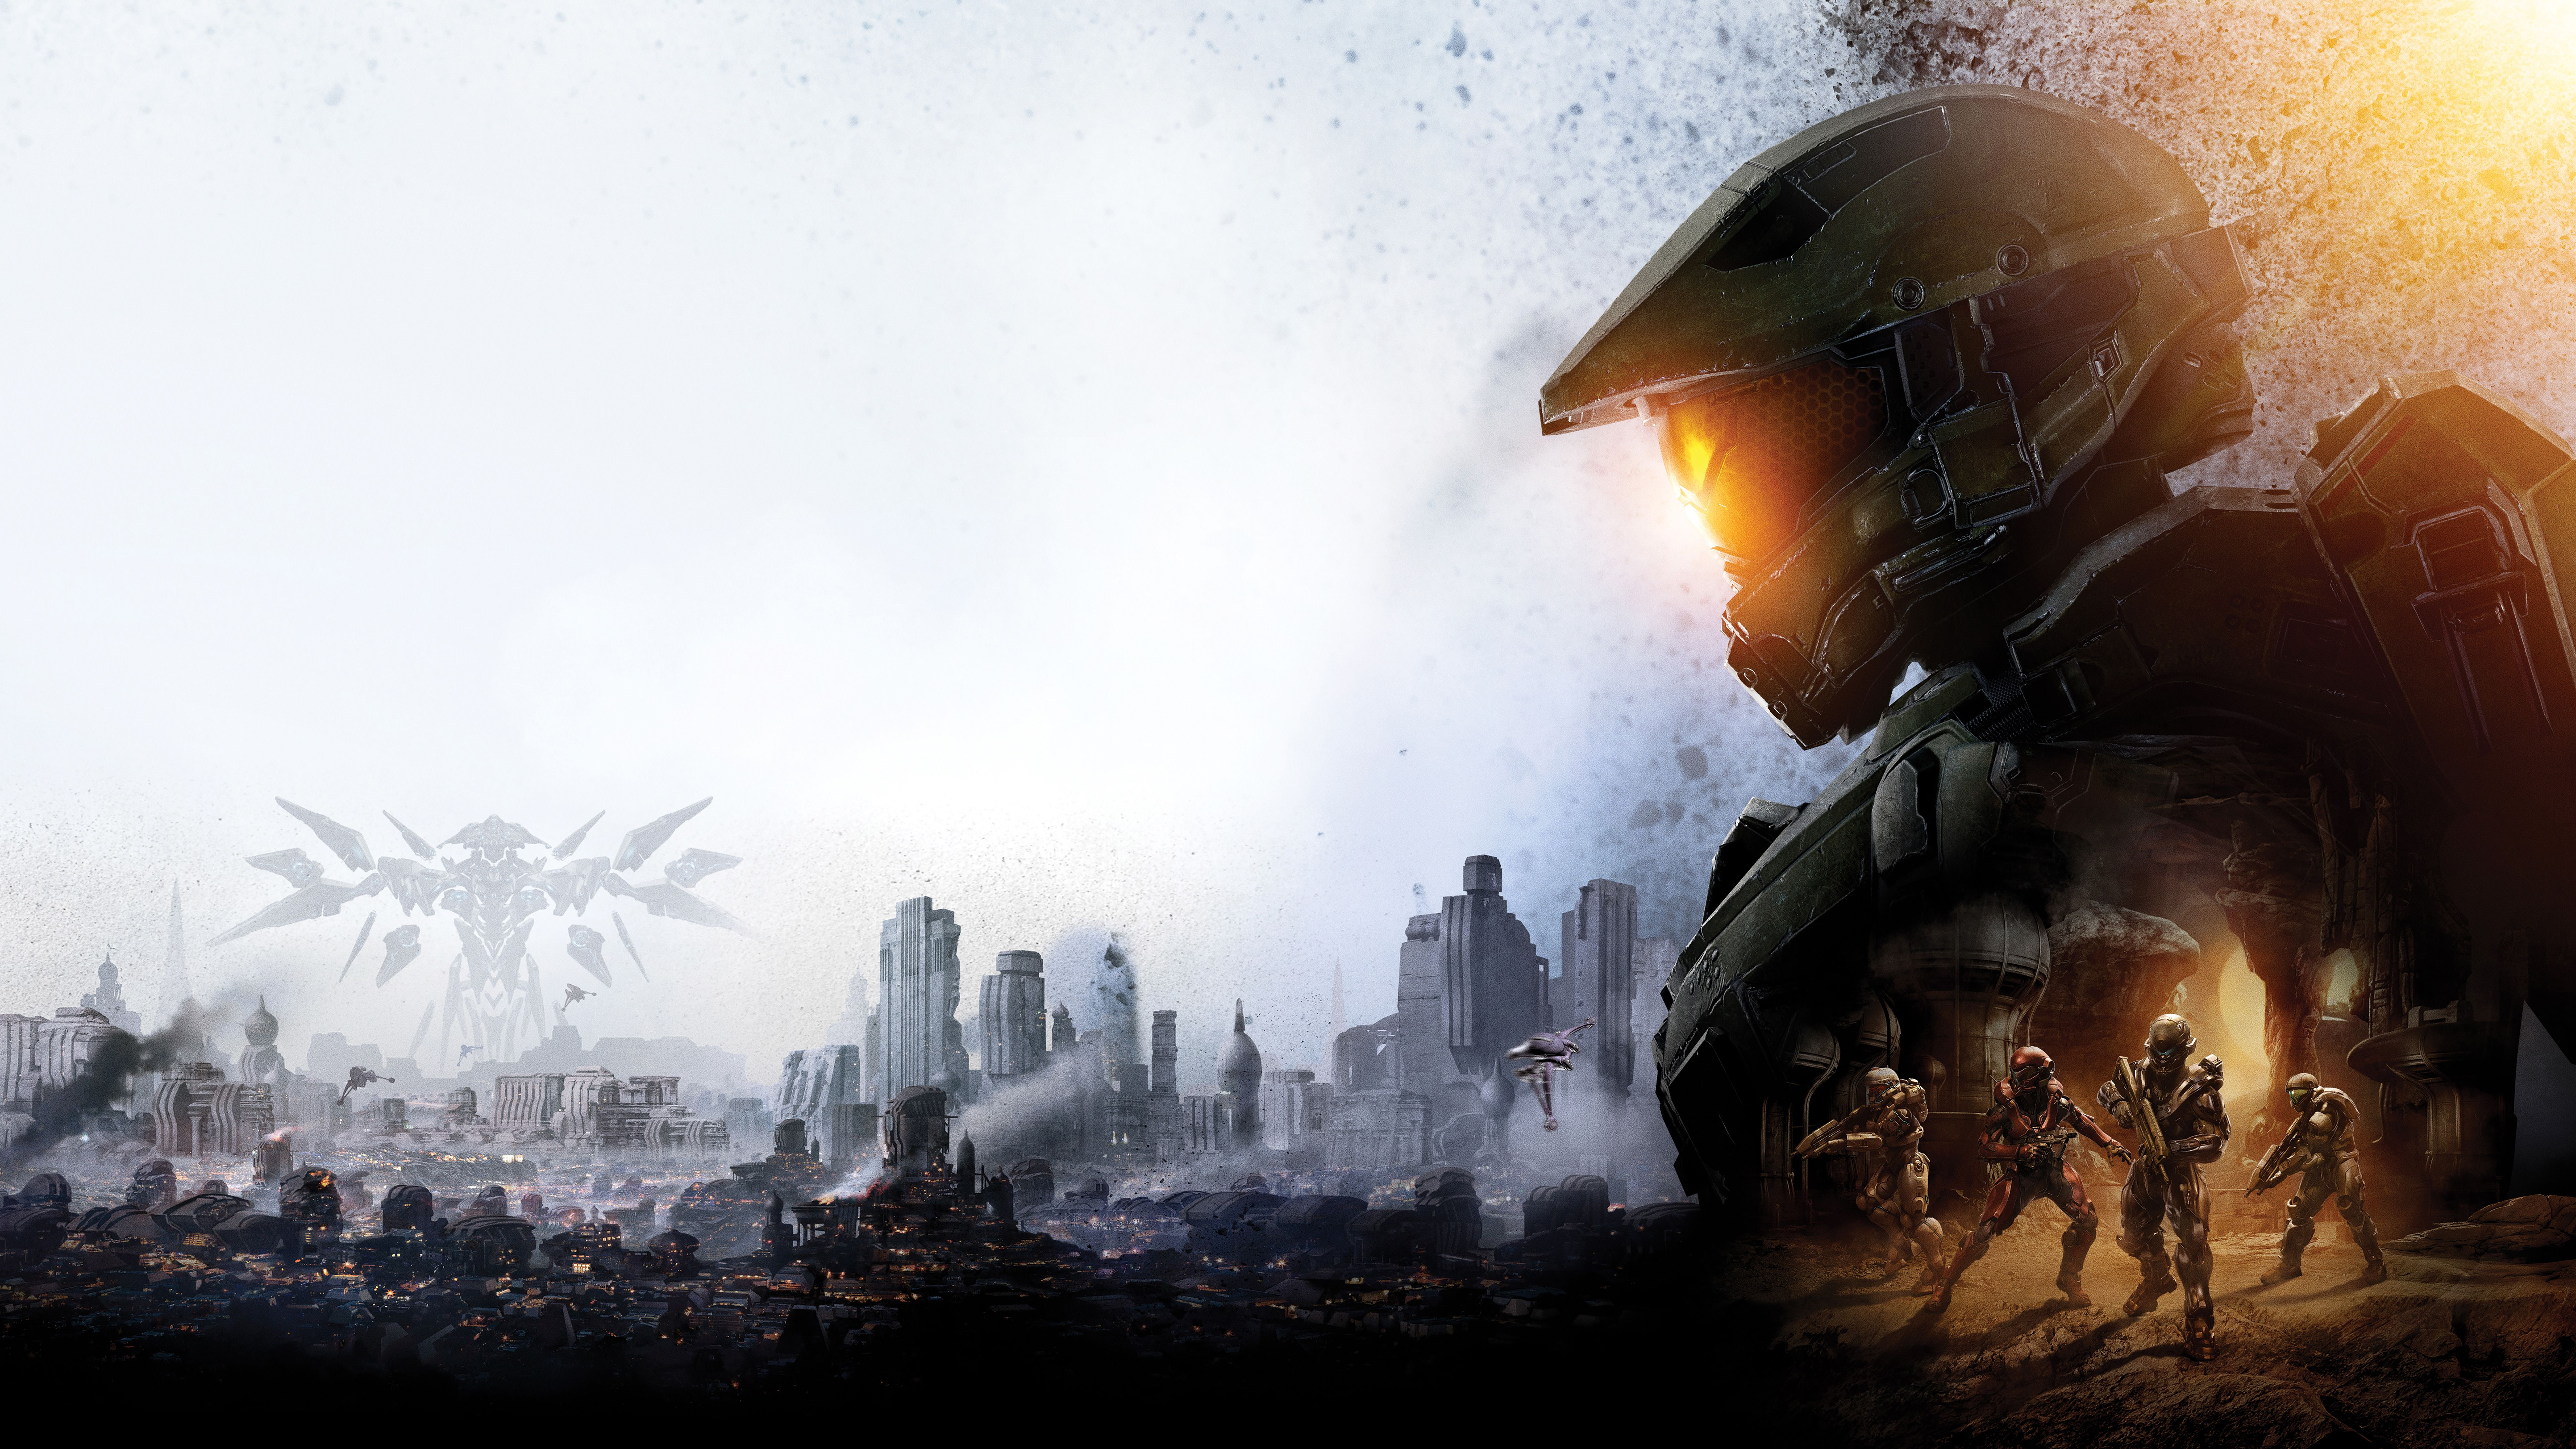 Halo Master Chief 4k Wallpapers Top Free Halo Master Chief 4k